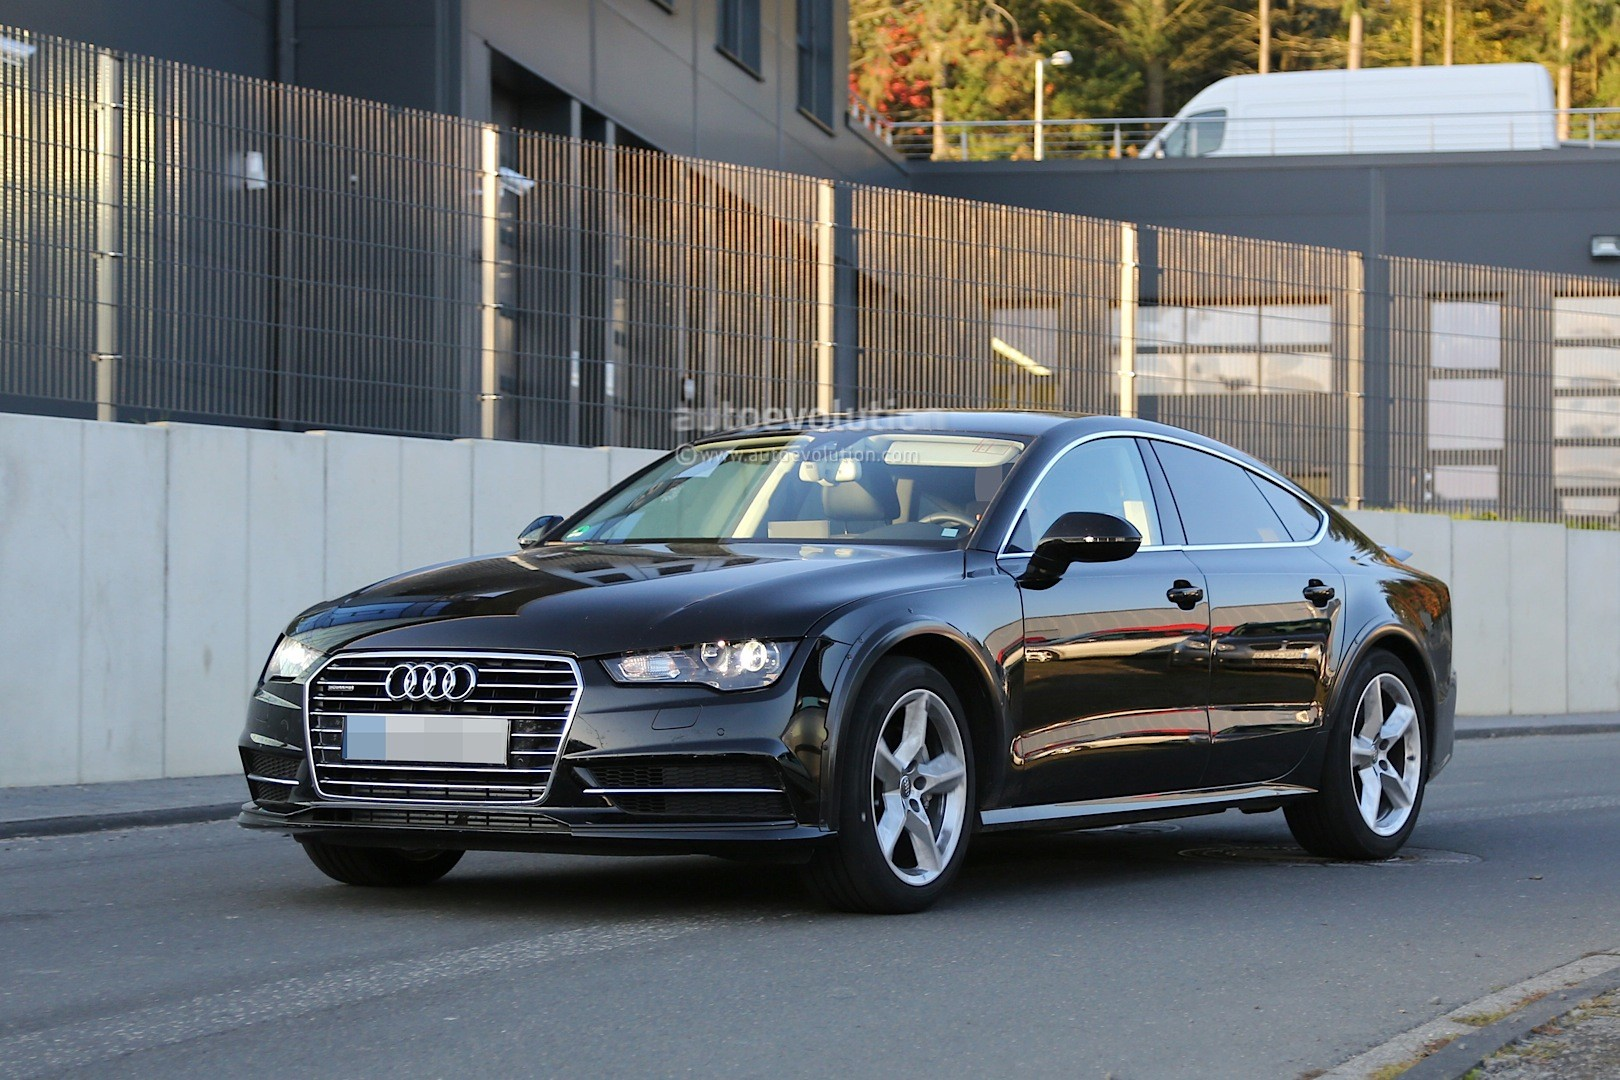 Spyshots: 2018 Audi A7 Chassis Testing Mule Seen For The First Time